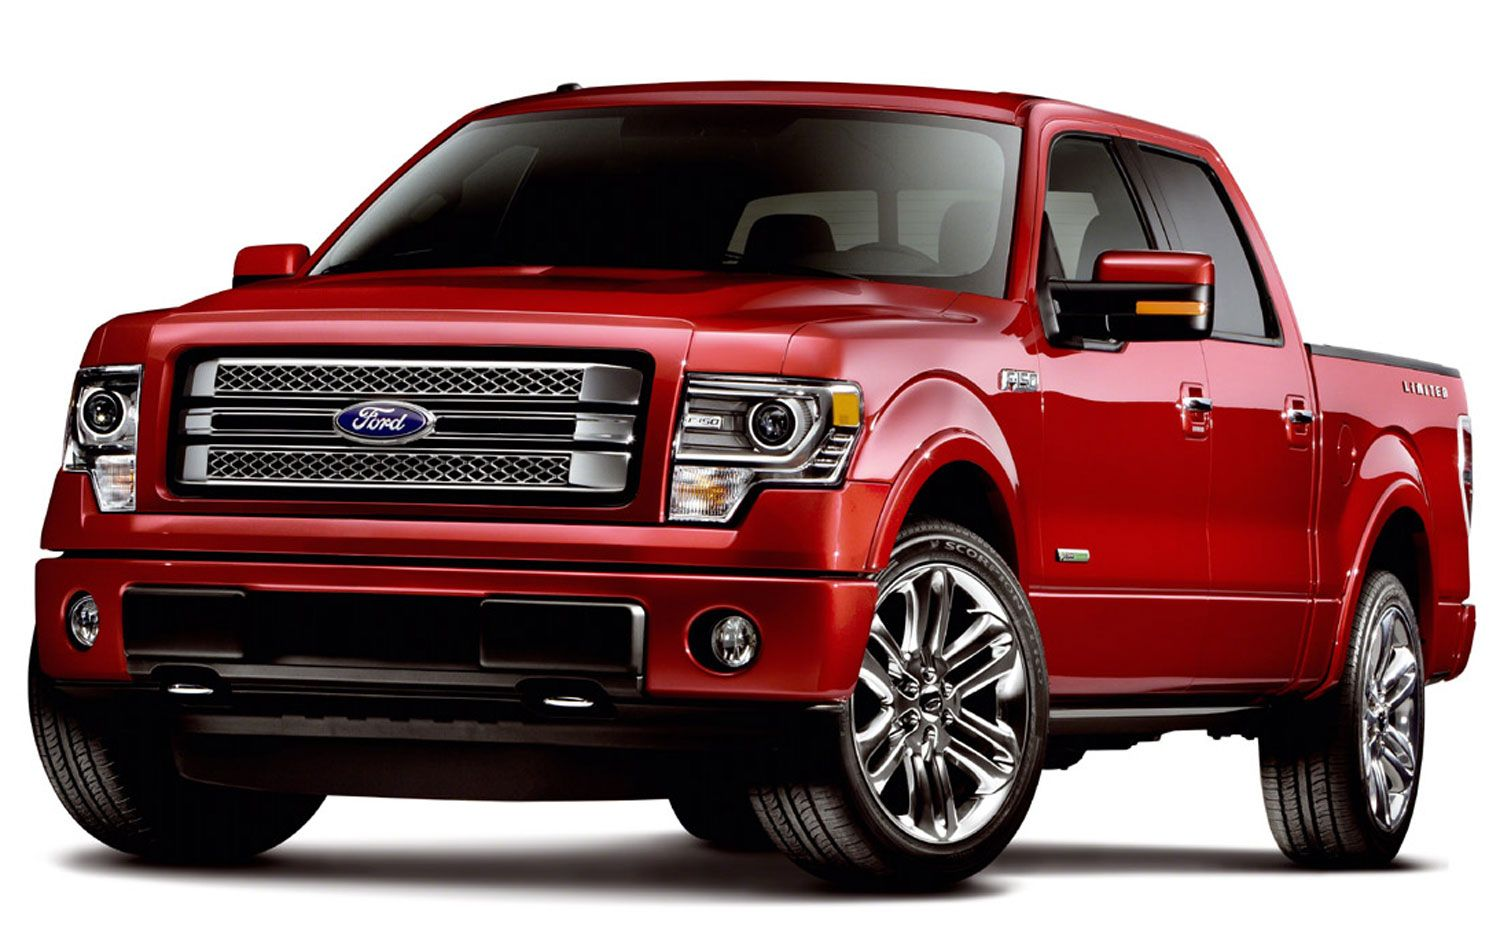 Pin By Redes Sociales Ford On Travel Abroad Studio Sp13 Behind The Brand Ford F150 Ford Motor Company Ford Motor